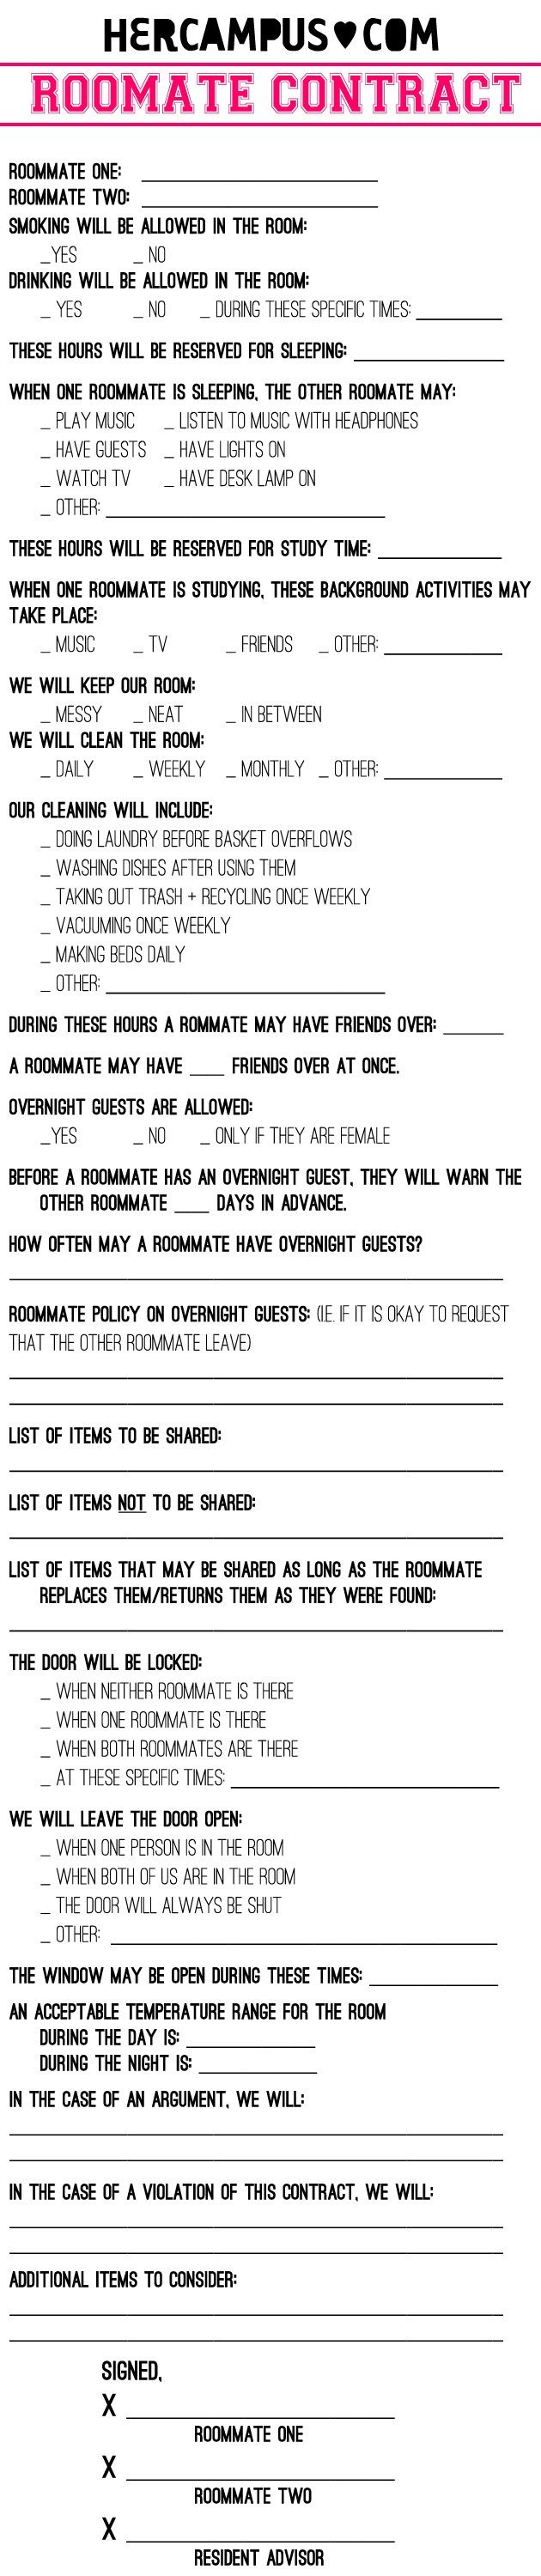 Draft A Roommate Agreement  Roommate Agreement Roommate And